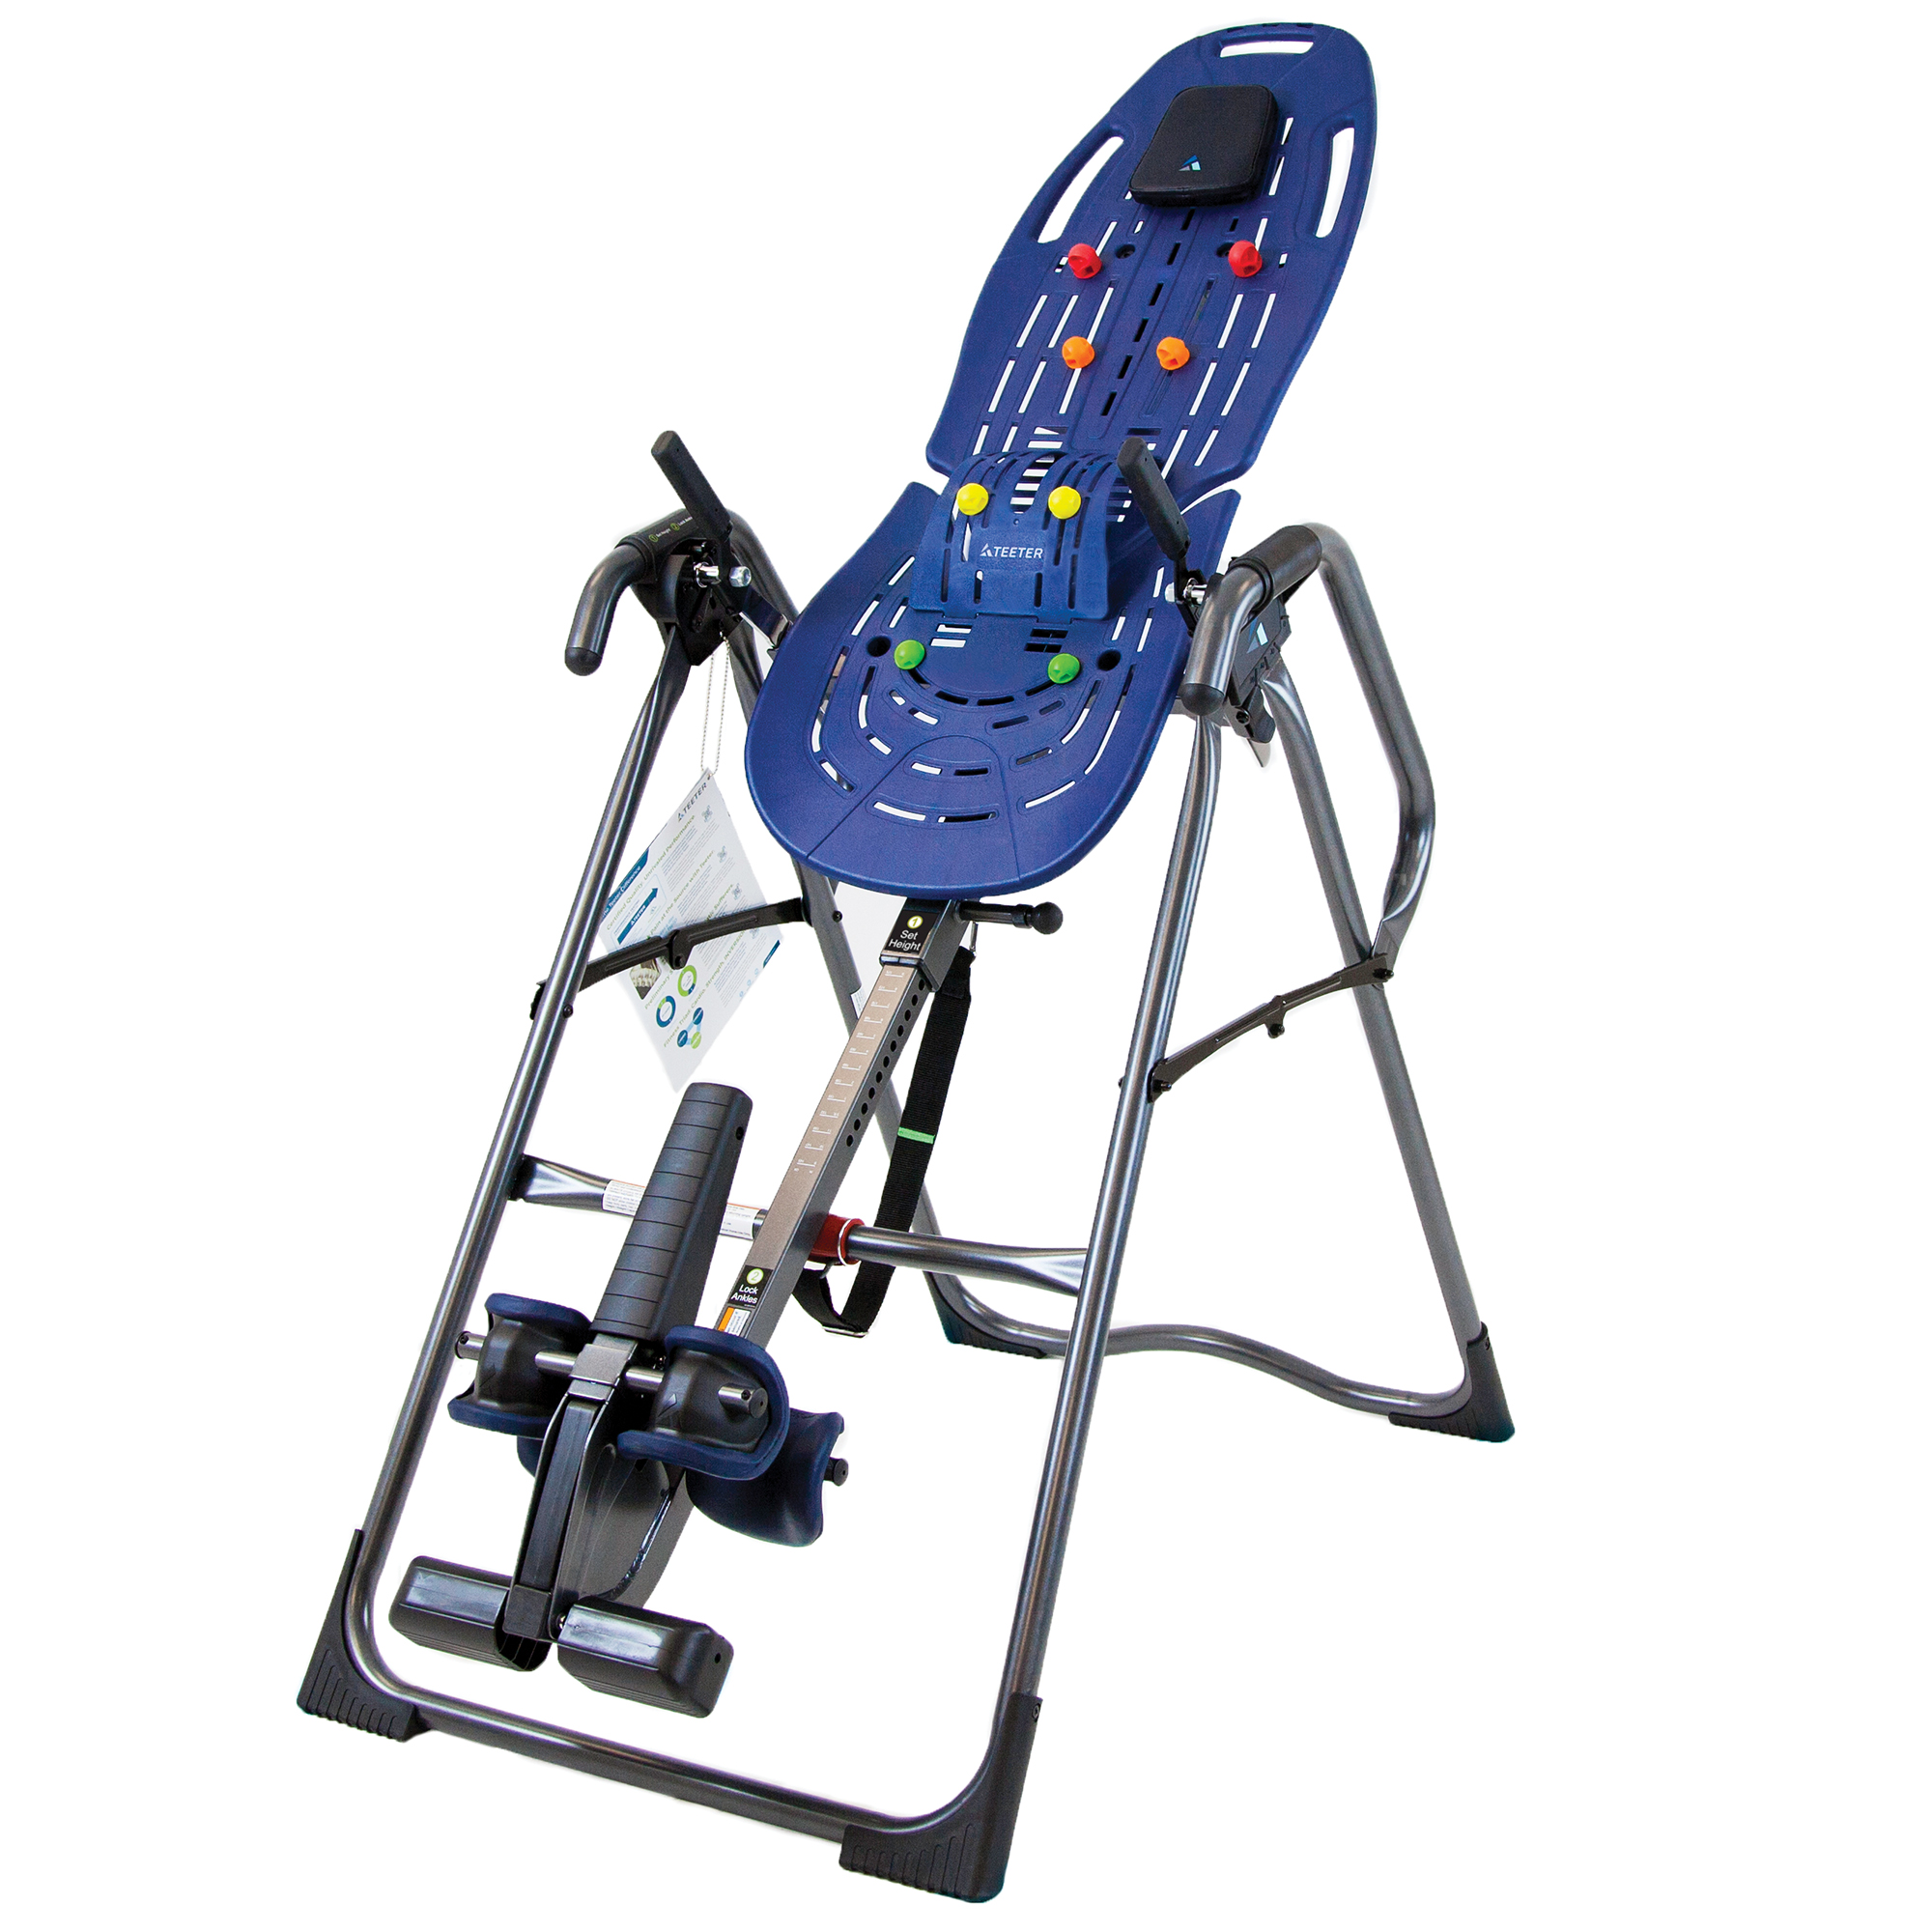 Teeter EP-960 Ltd. Inversion Table with Back Pain Relief Kit by Teeter